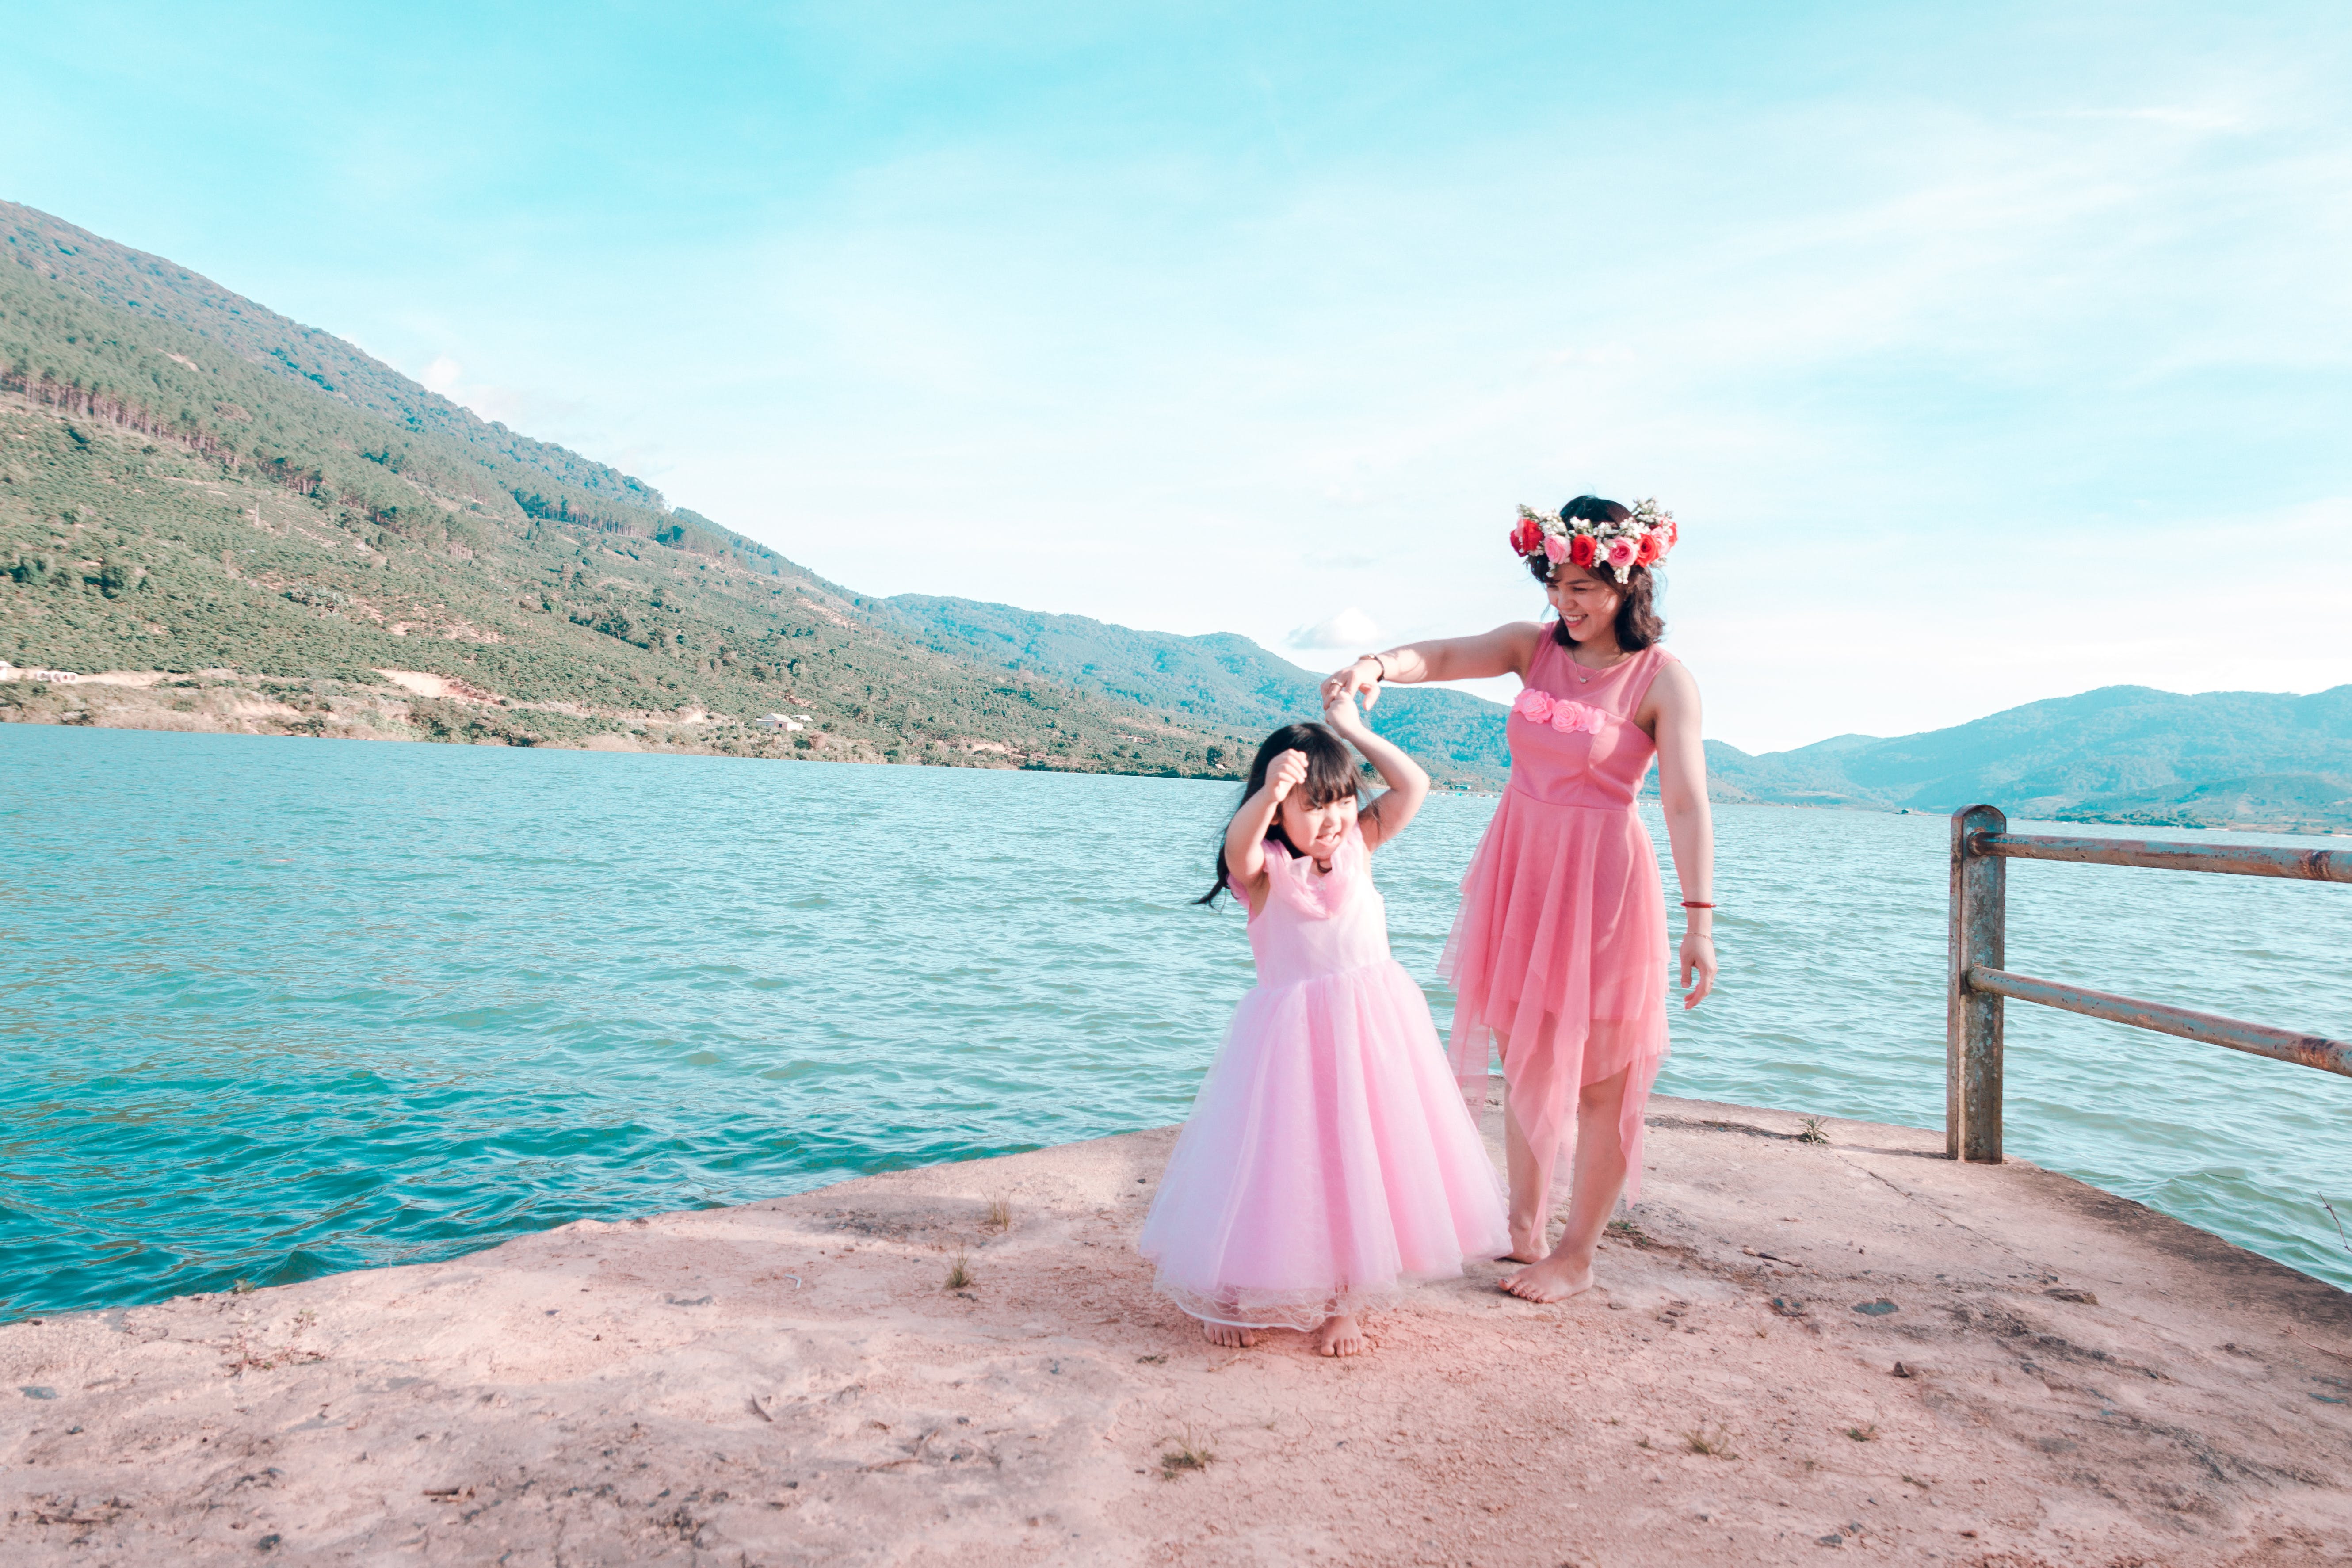 Woman and Child Wearing Pink Gowns Near Sea